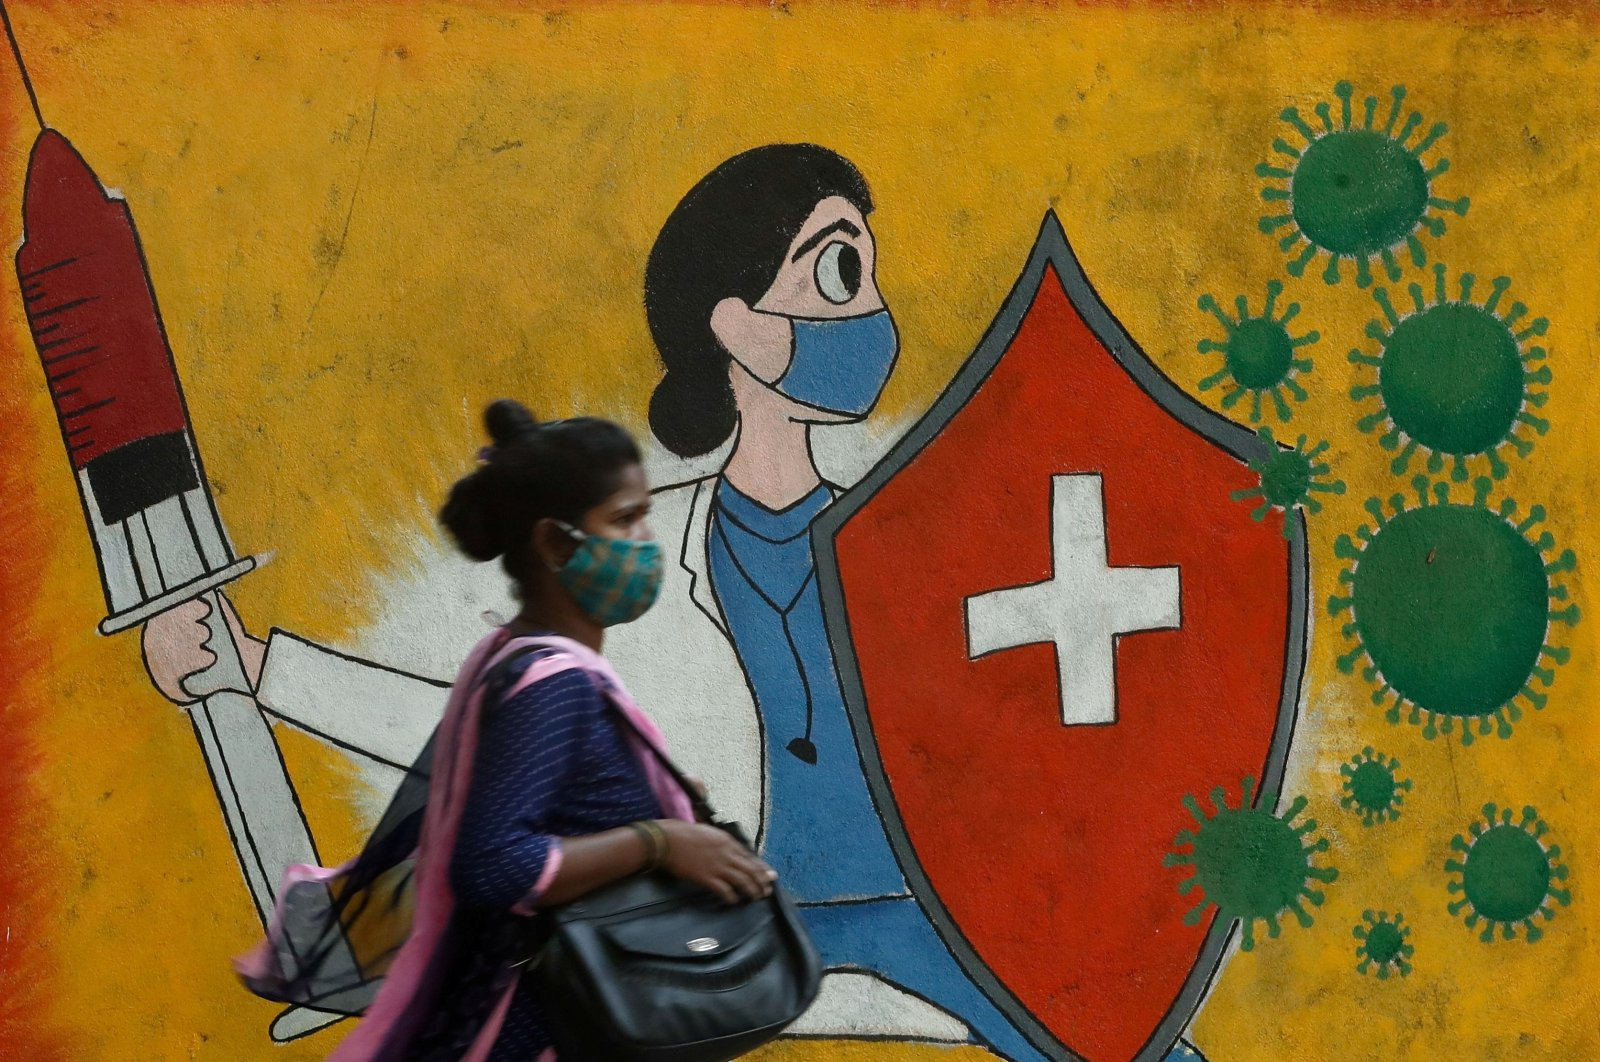 A woman walks past graffiti on a street depicting a health care worker fighting coronavirus cells, in Mumbai, India, May 10, 2021. (Reuters Photo)